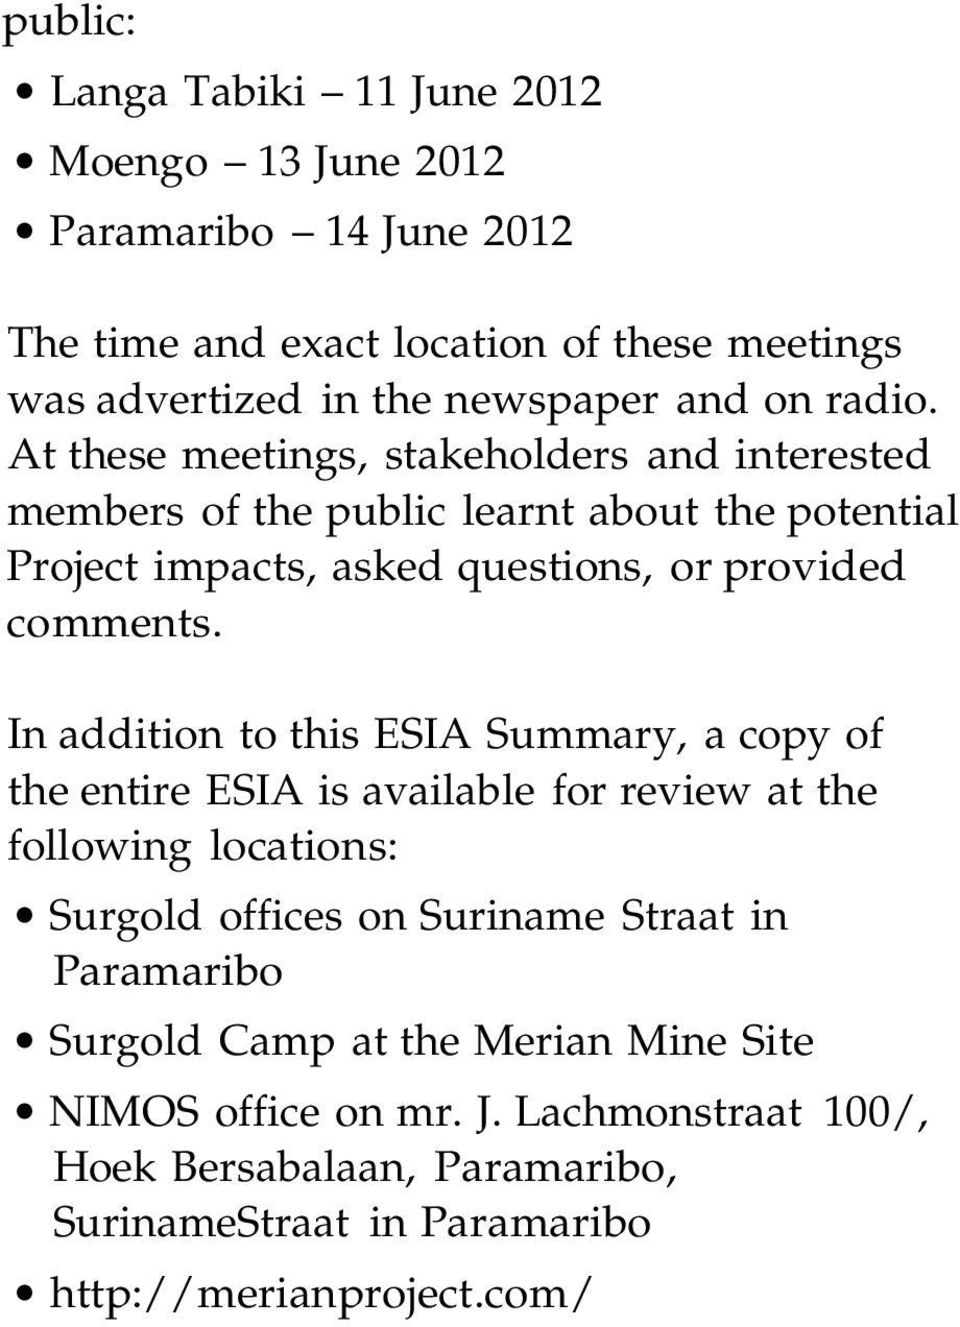 In addition to this ESIA Summary, a copy of the entire ESIA is available for review at the following locations: Surgold offices on Suriname Straat in Paramaribo